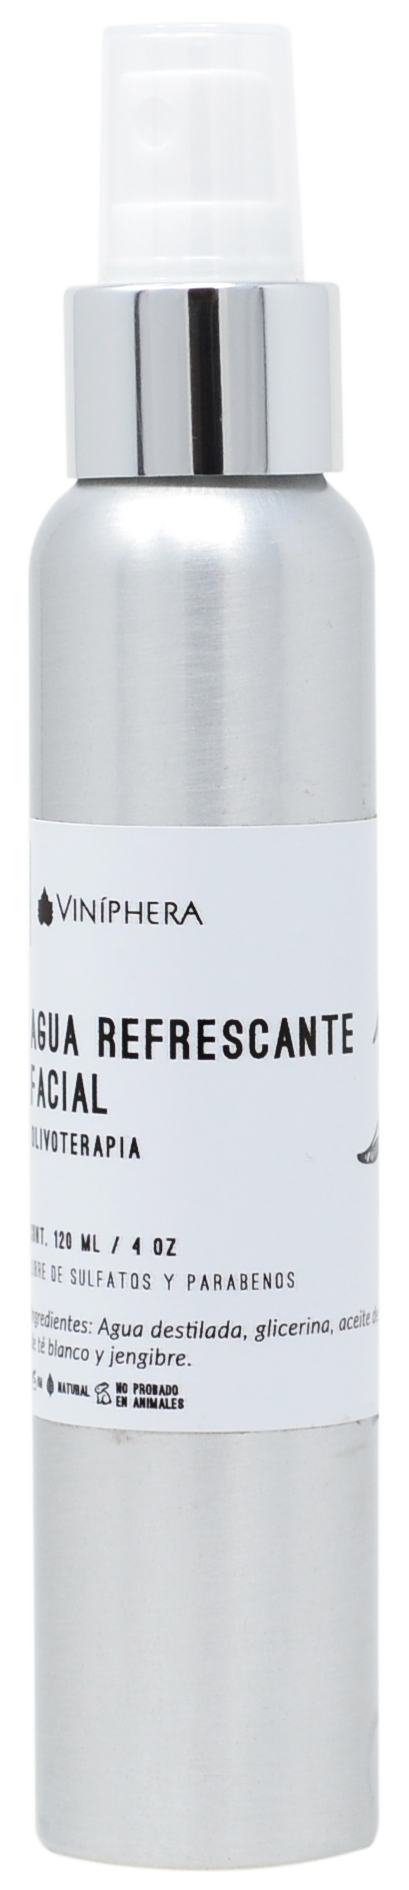 Agua Refrescante Facial De Olivo Terapia 120ml/4 oz. (Botella Plata)